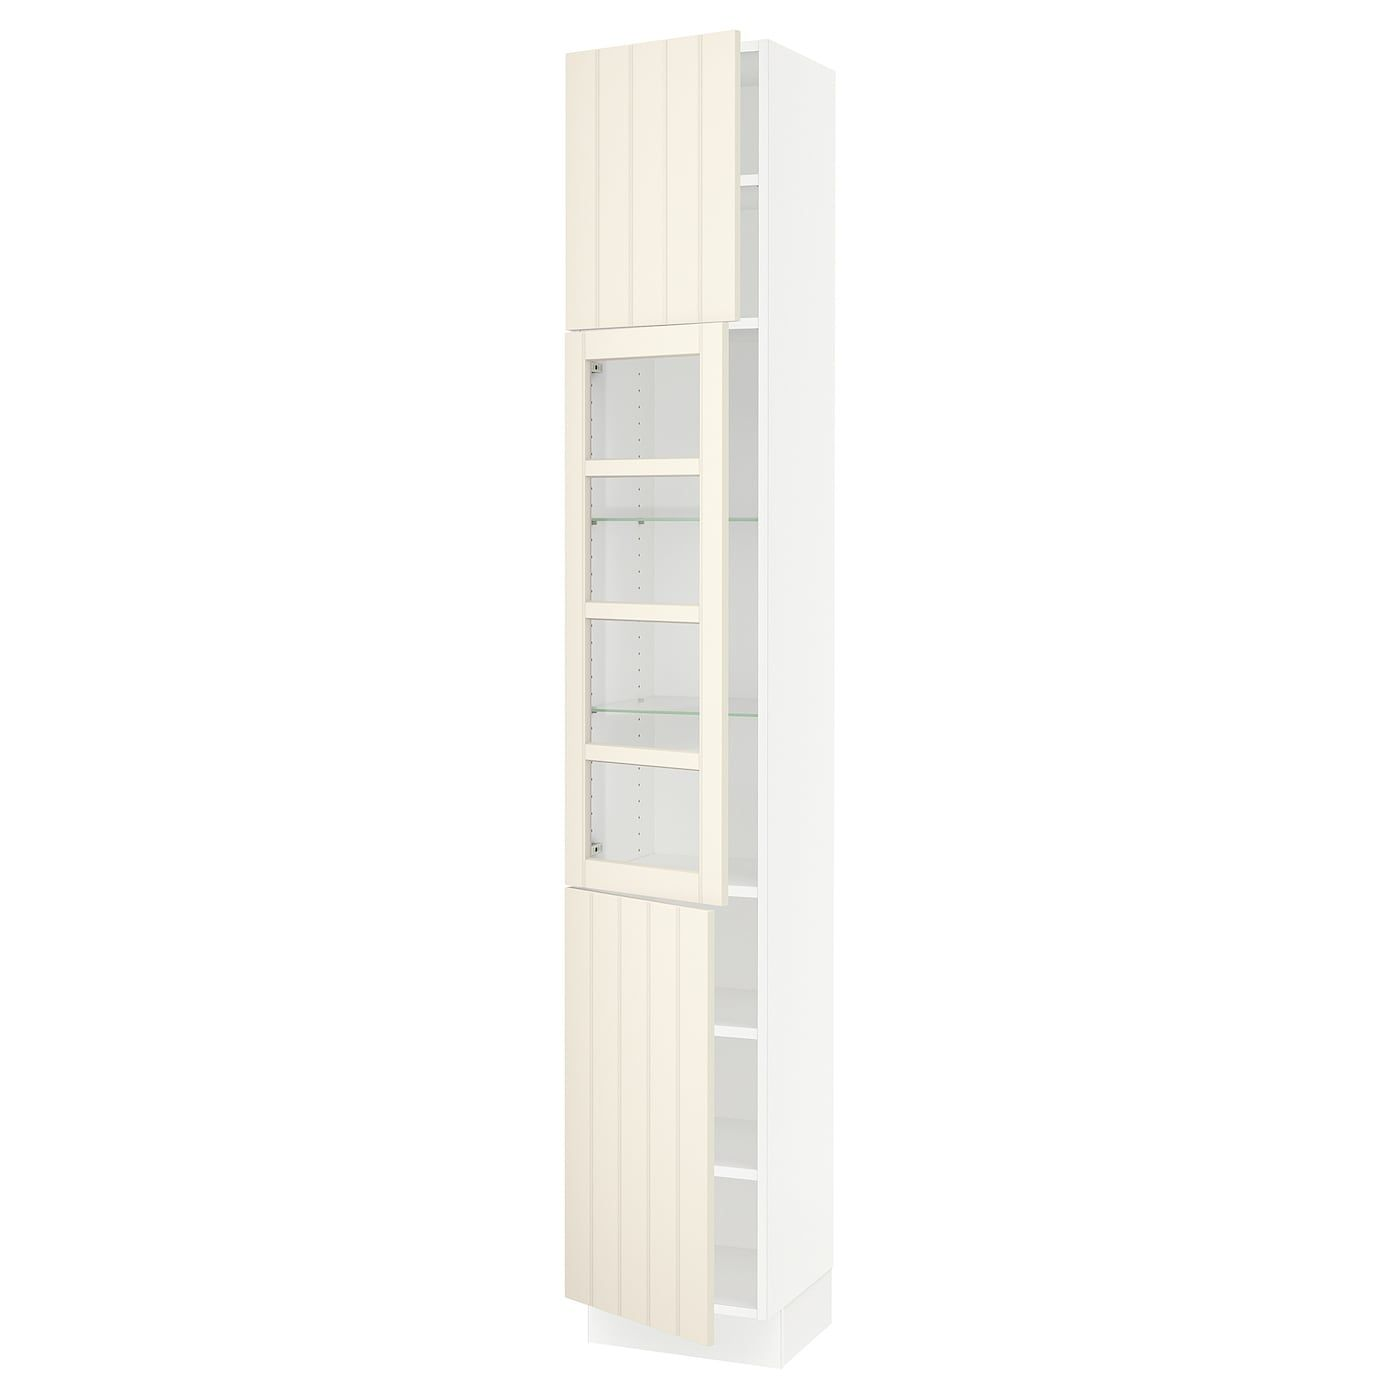 Ikea Sektion White Hittarp Off White High Cabinet W Glass Door 2 Doors In 2020 Tempered Glass Door Tall Kitchen